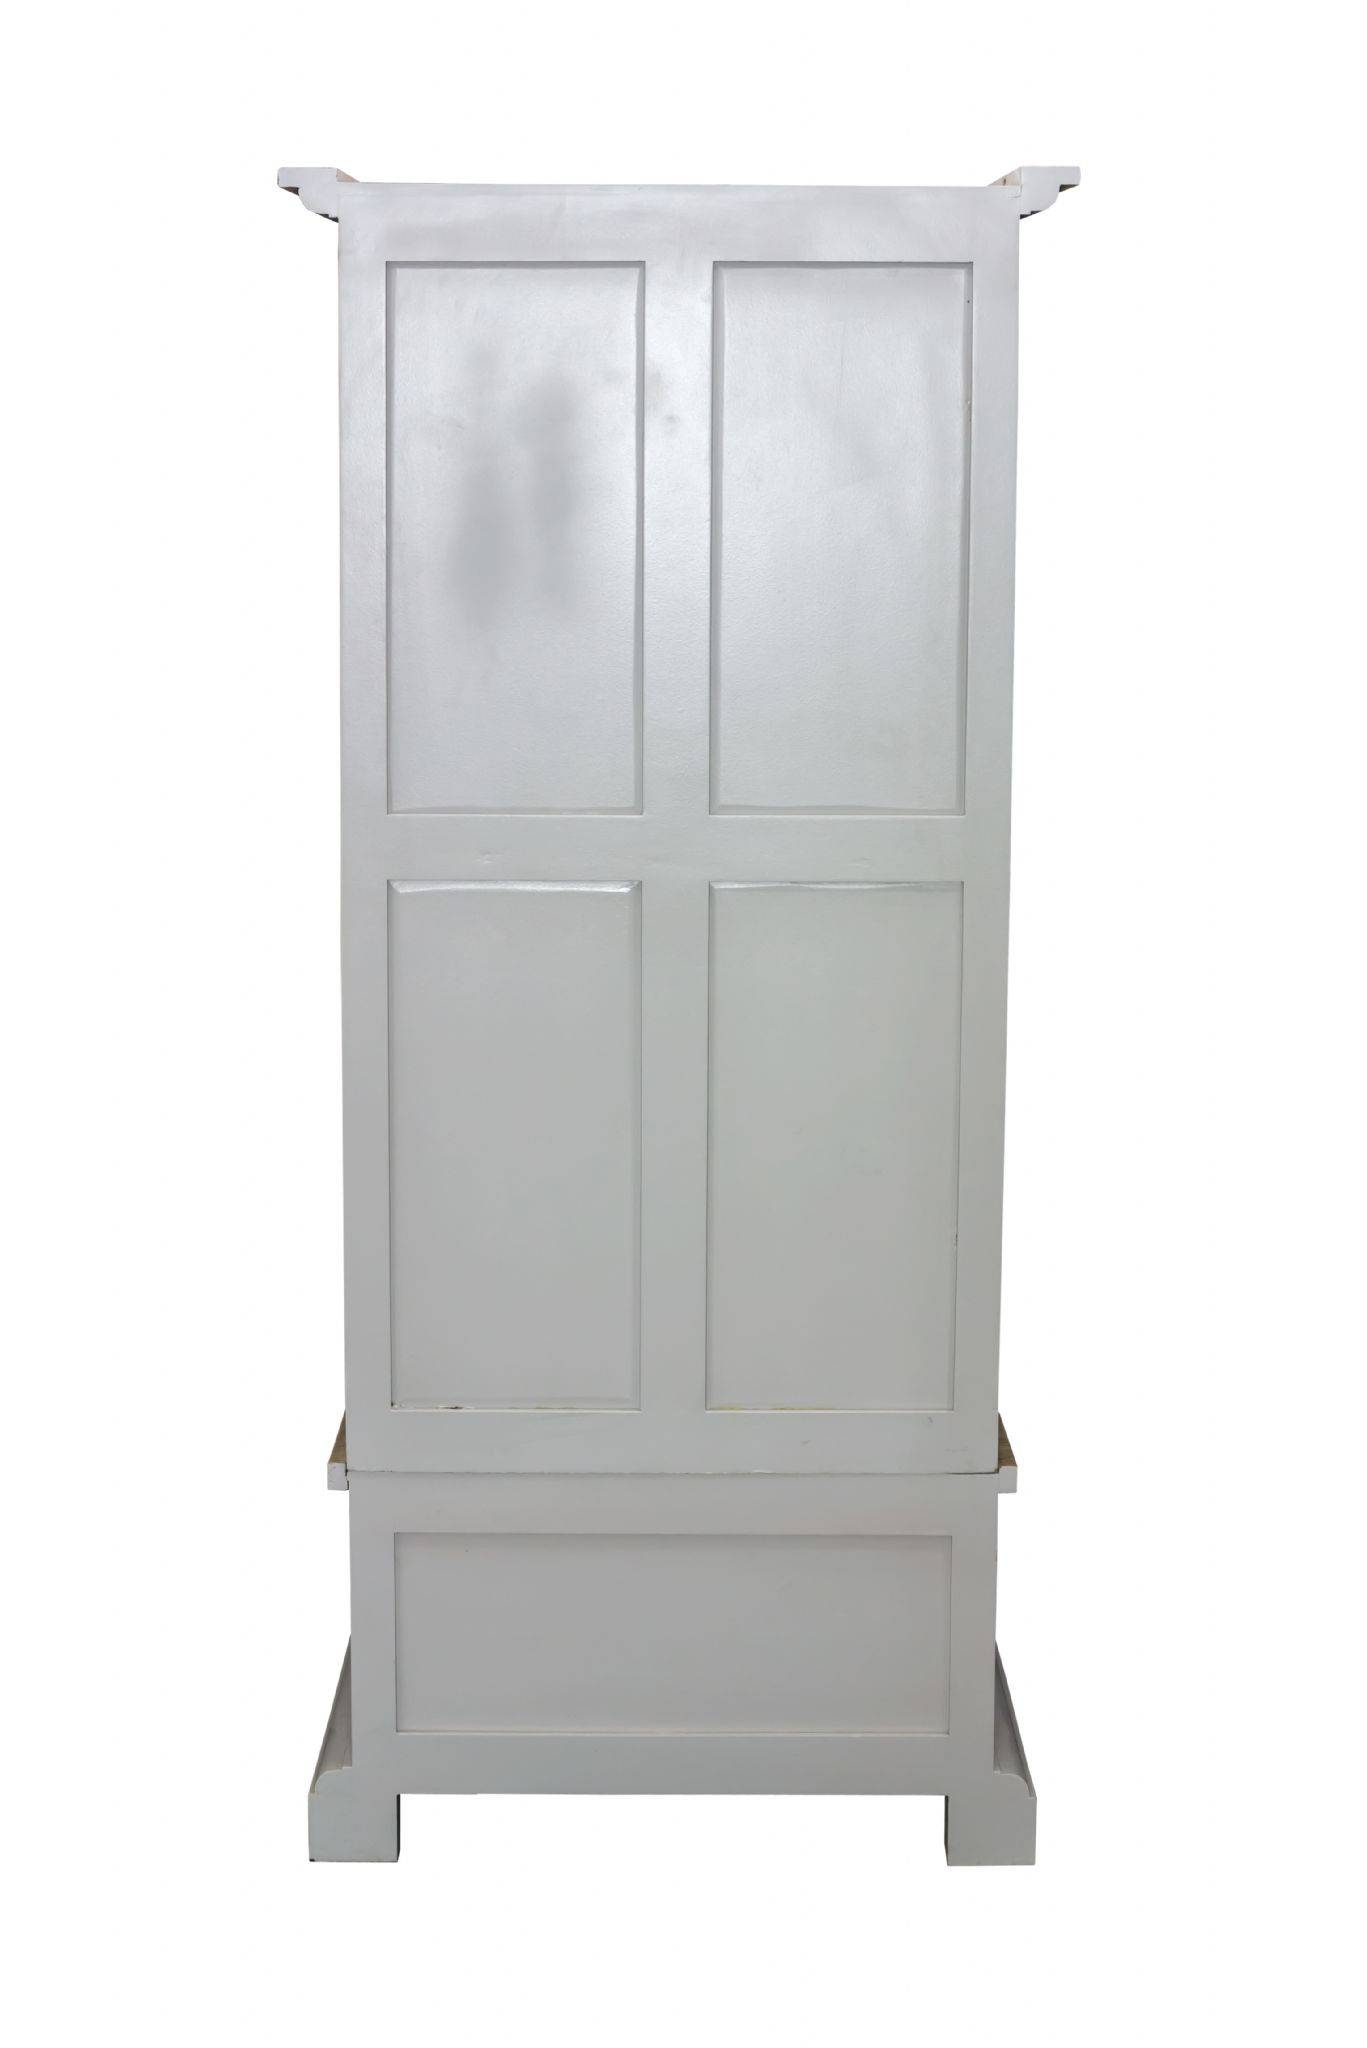 Pine Shabby Chic French Grey Single Wardrobe Inside Single French Wardrobes (View 9 of 15)